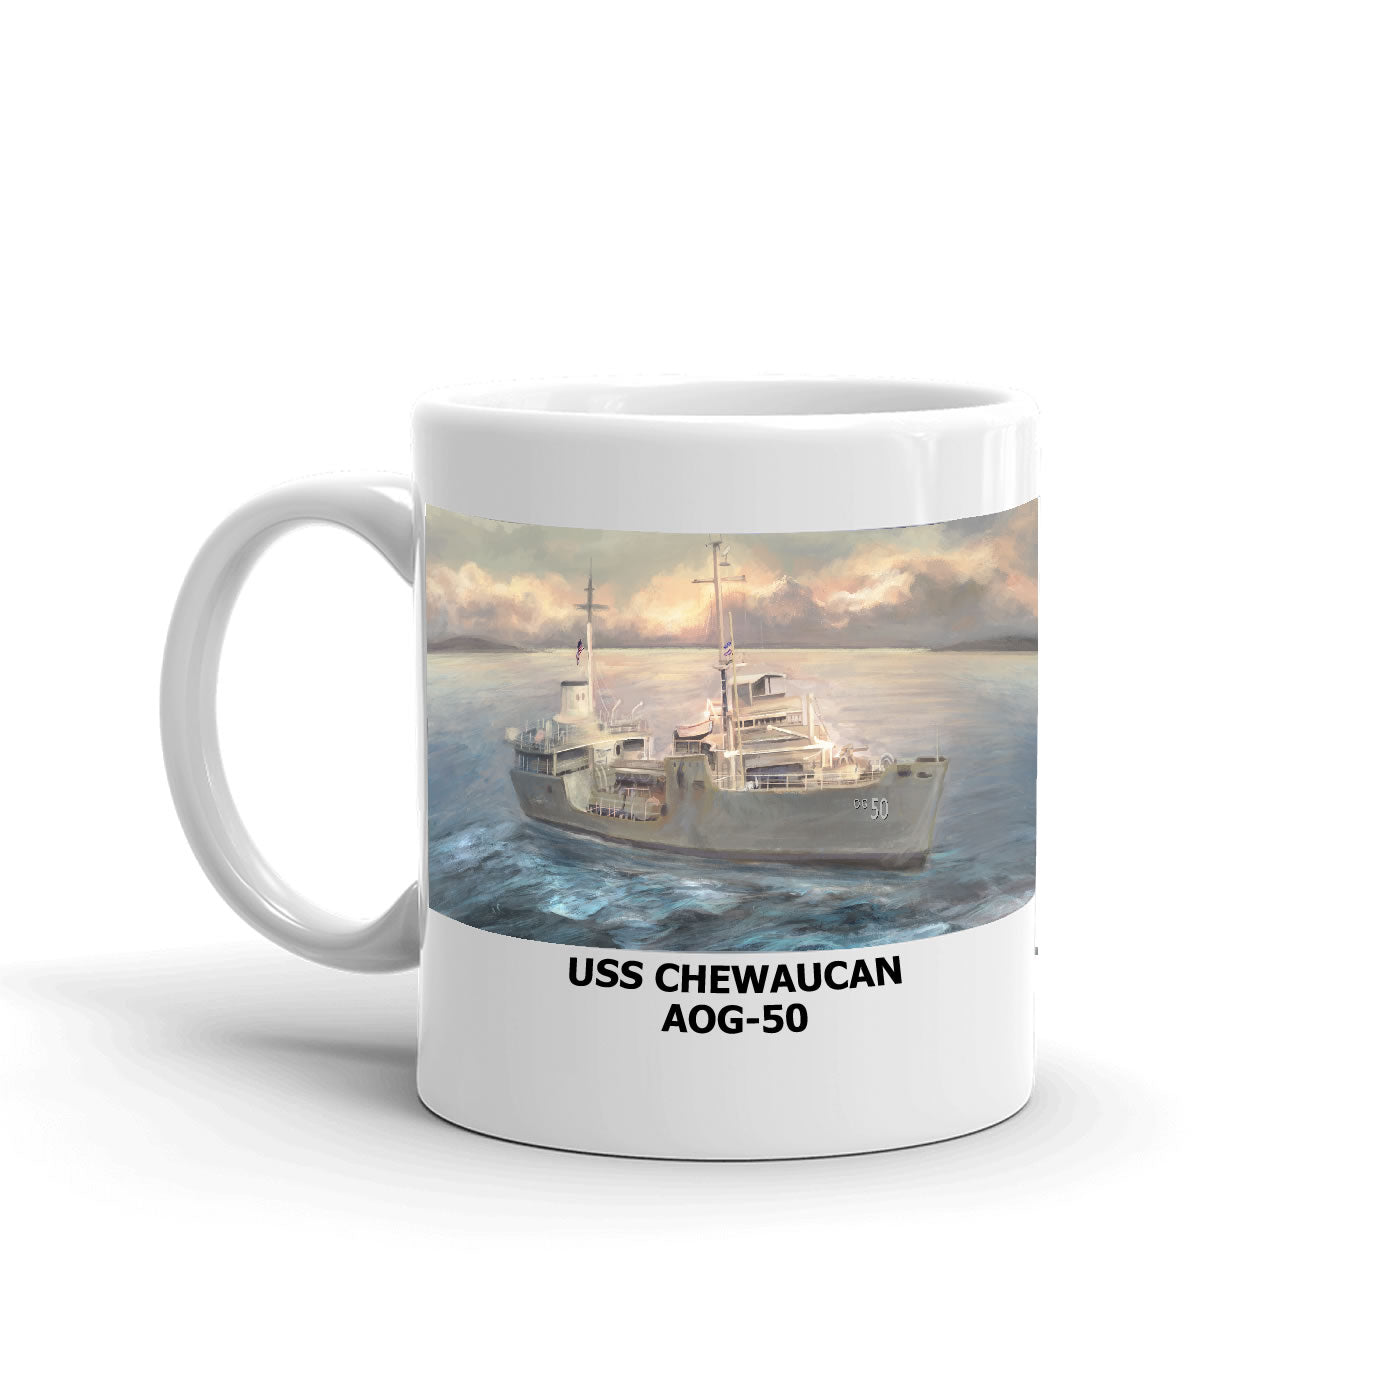 USS Chewaucan AOG-50 Coffee Cup Mug Left Handle